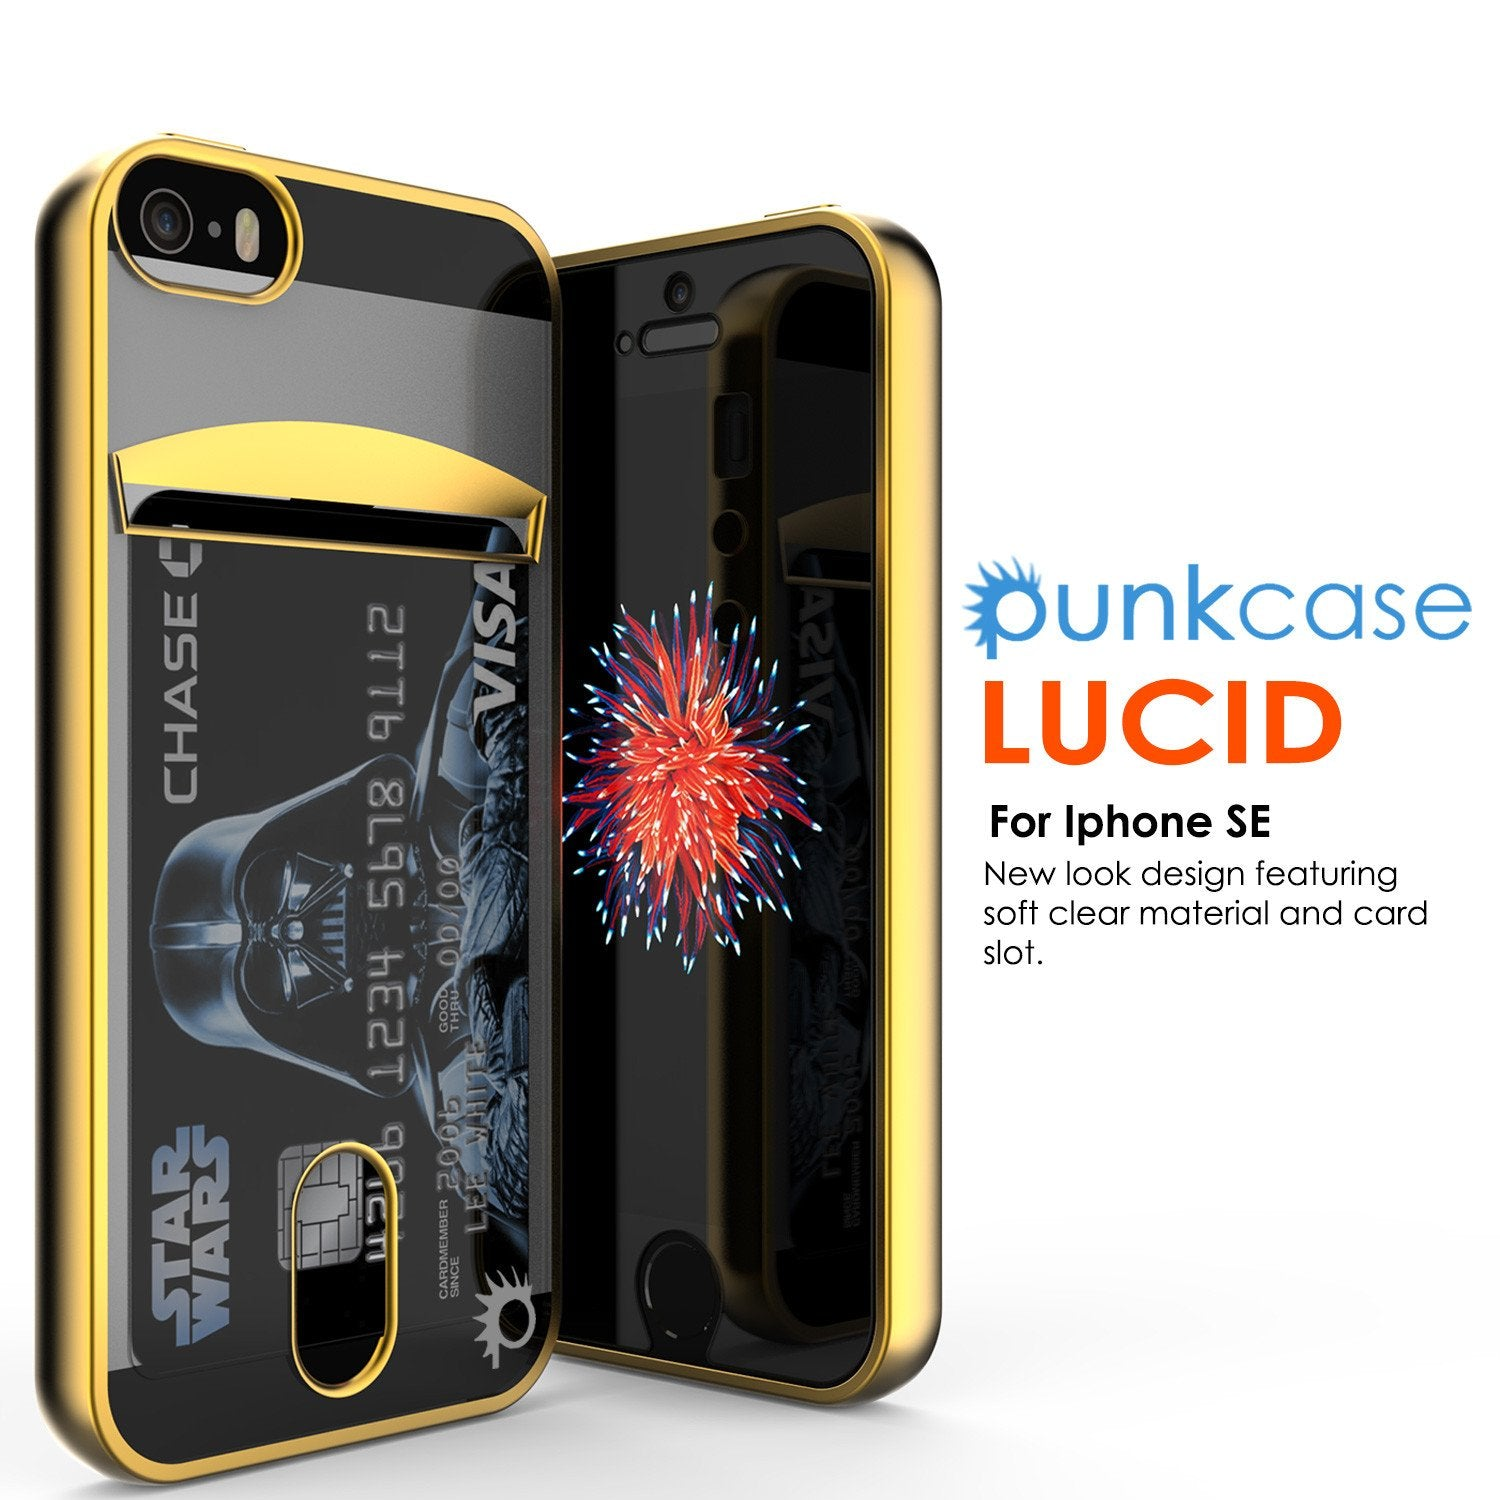 iPhone SE/5S/5 Case, PUNKCASE® LUCID Gold Series | Card Slot | SHIELD Screen Protector | Ultra fit - PunkCase NZ